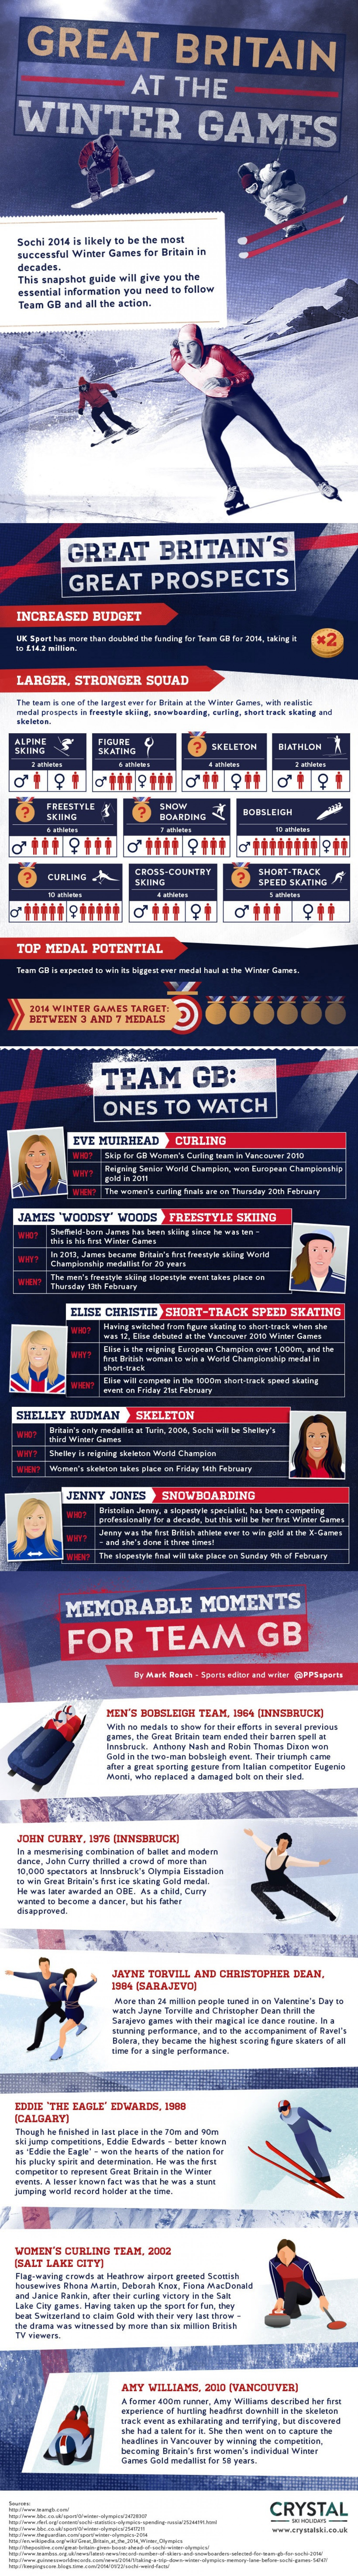 Great Britain At The Winter Games Infographic